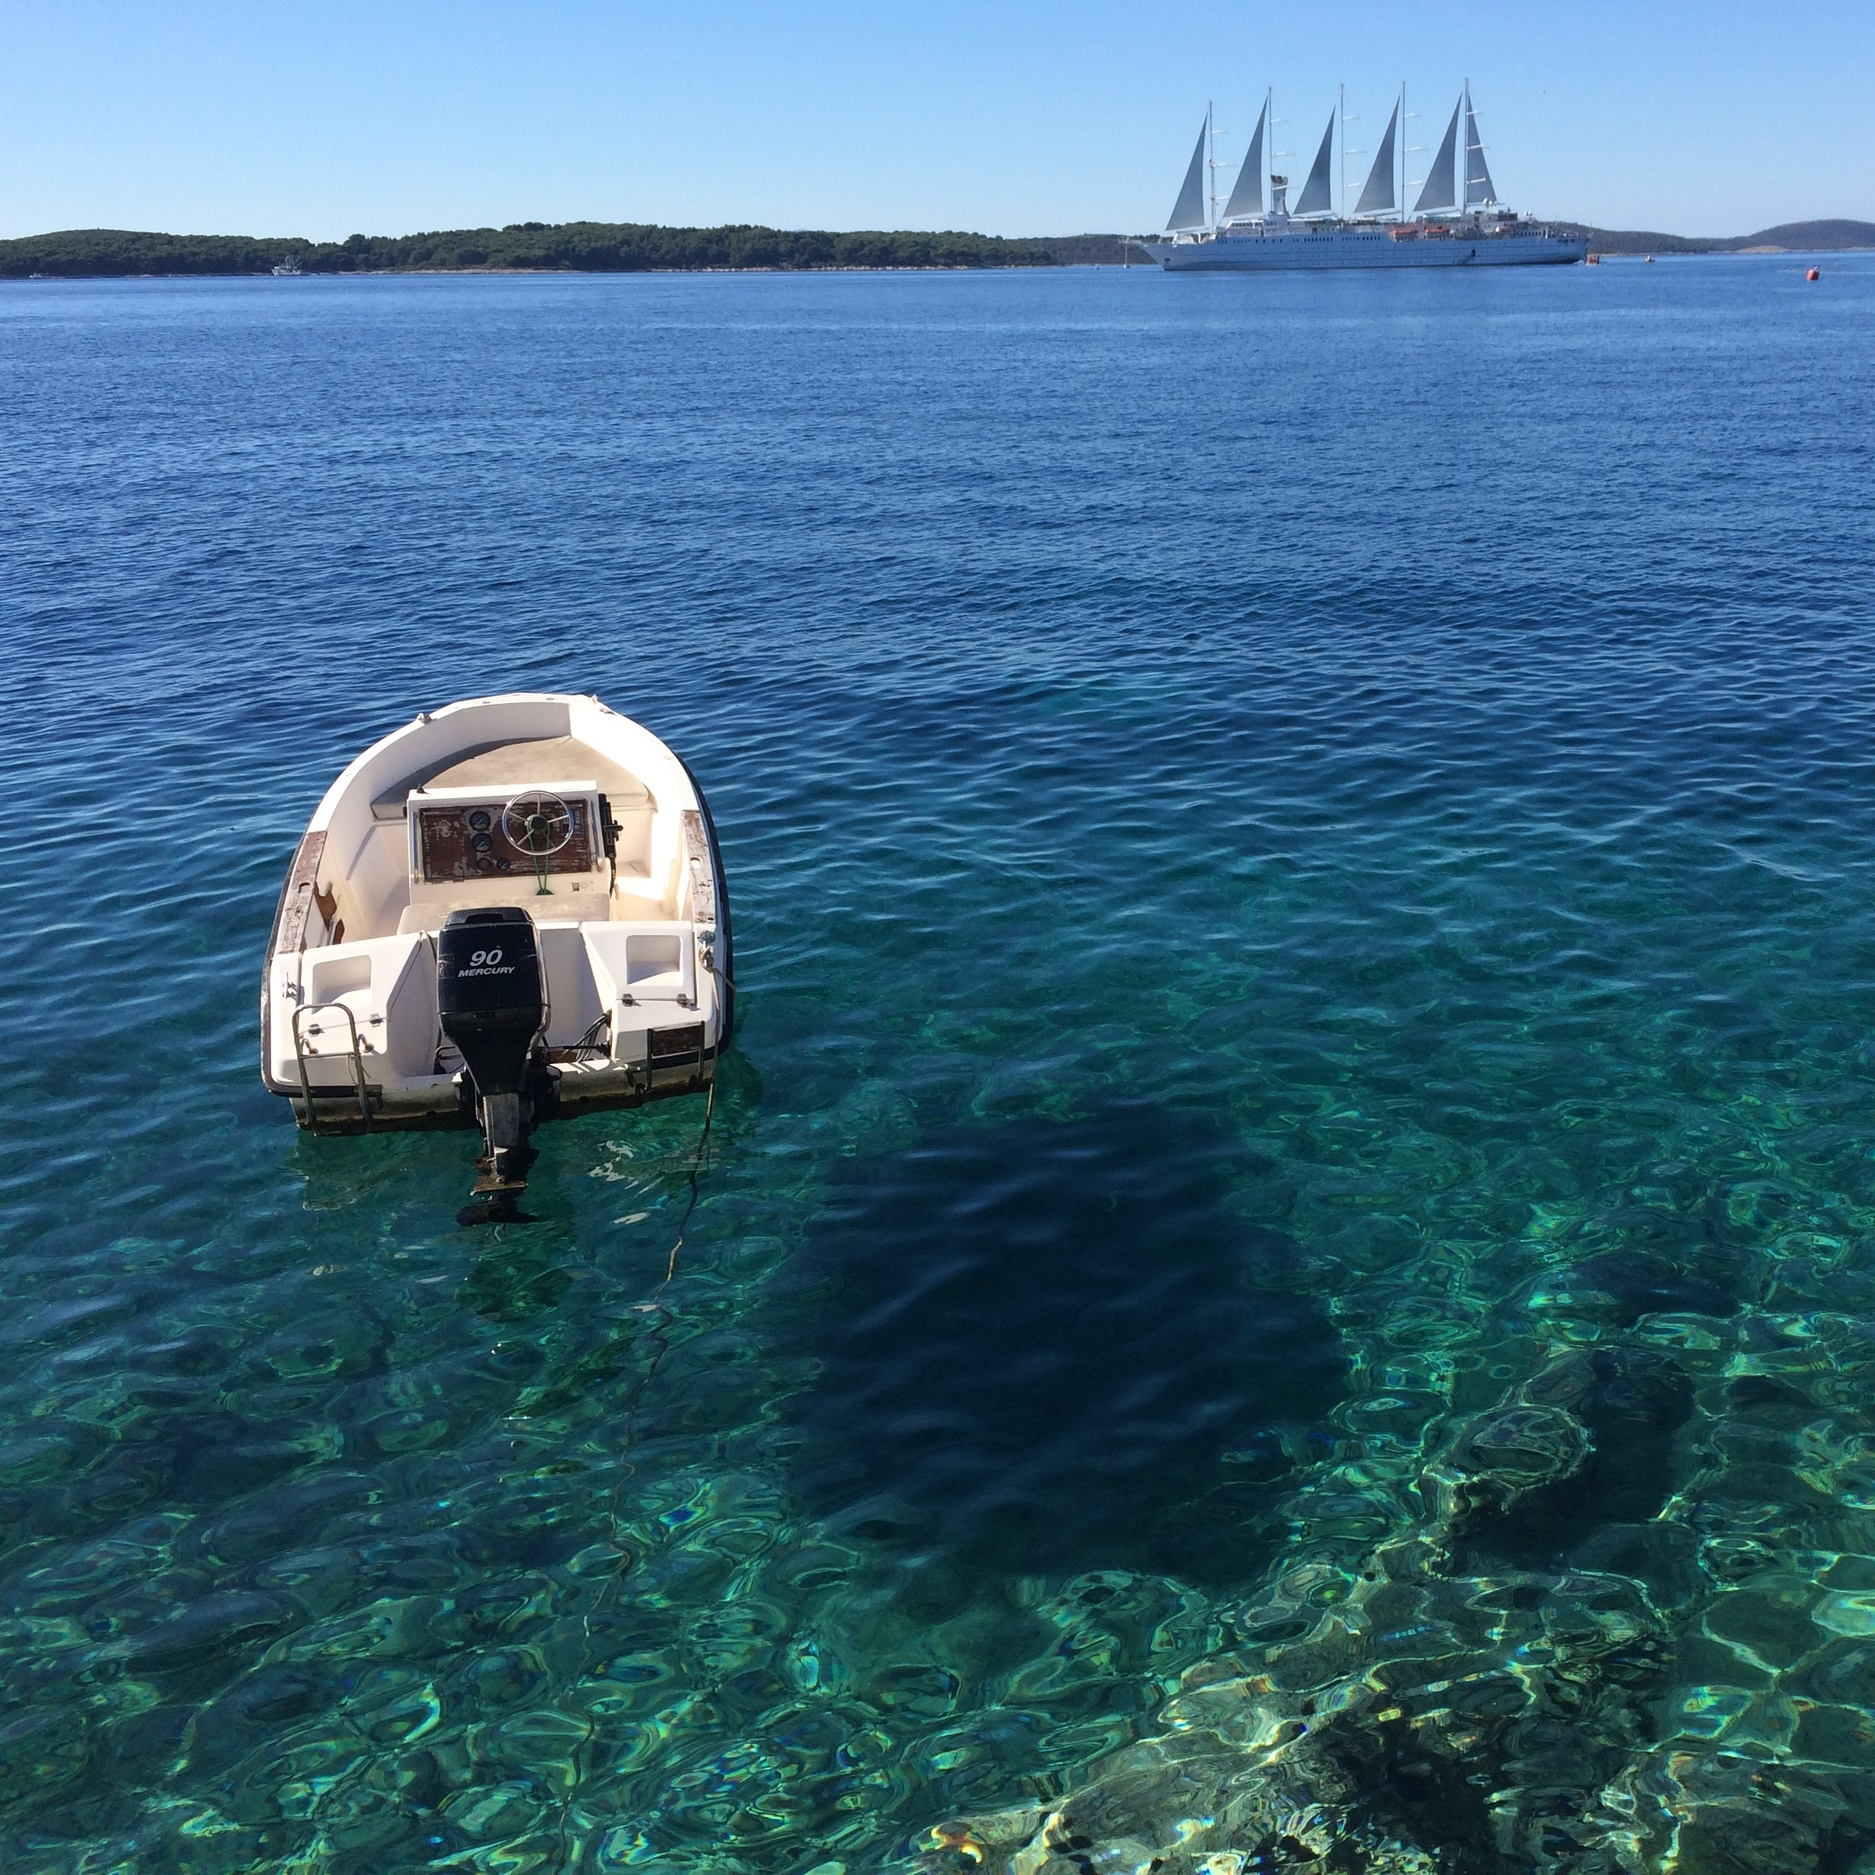 If I didn't take risks I'd never of found paradise in Hvar, Croatia.